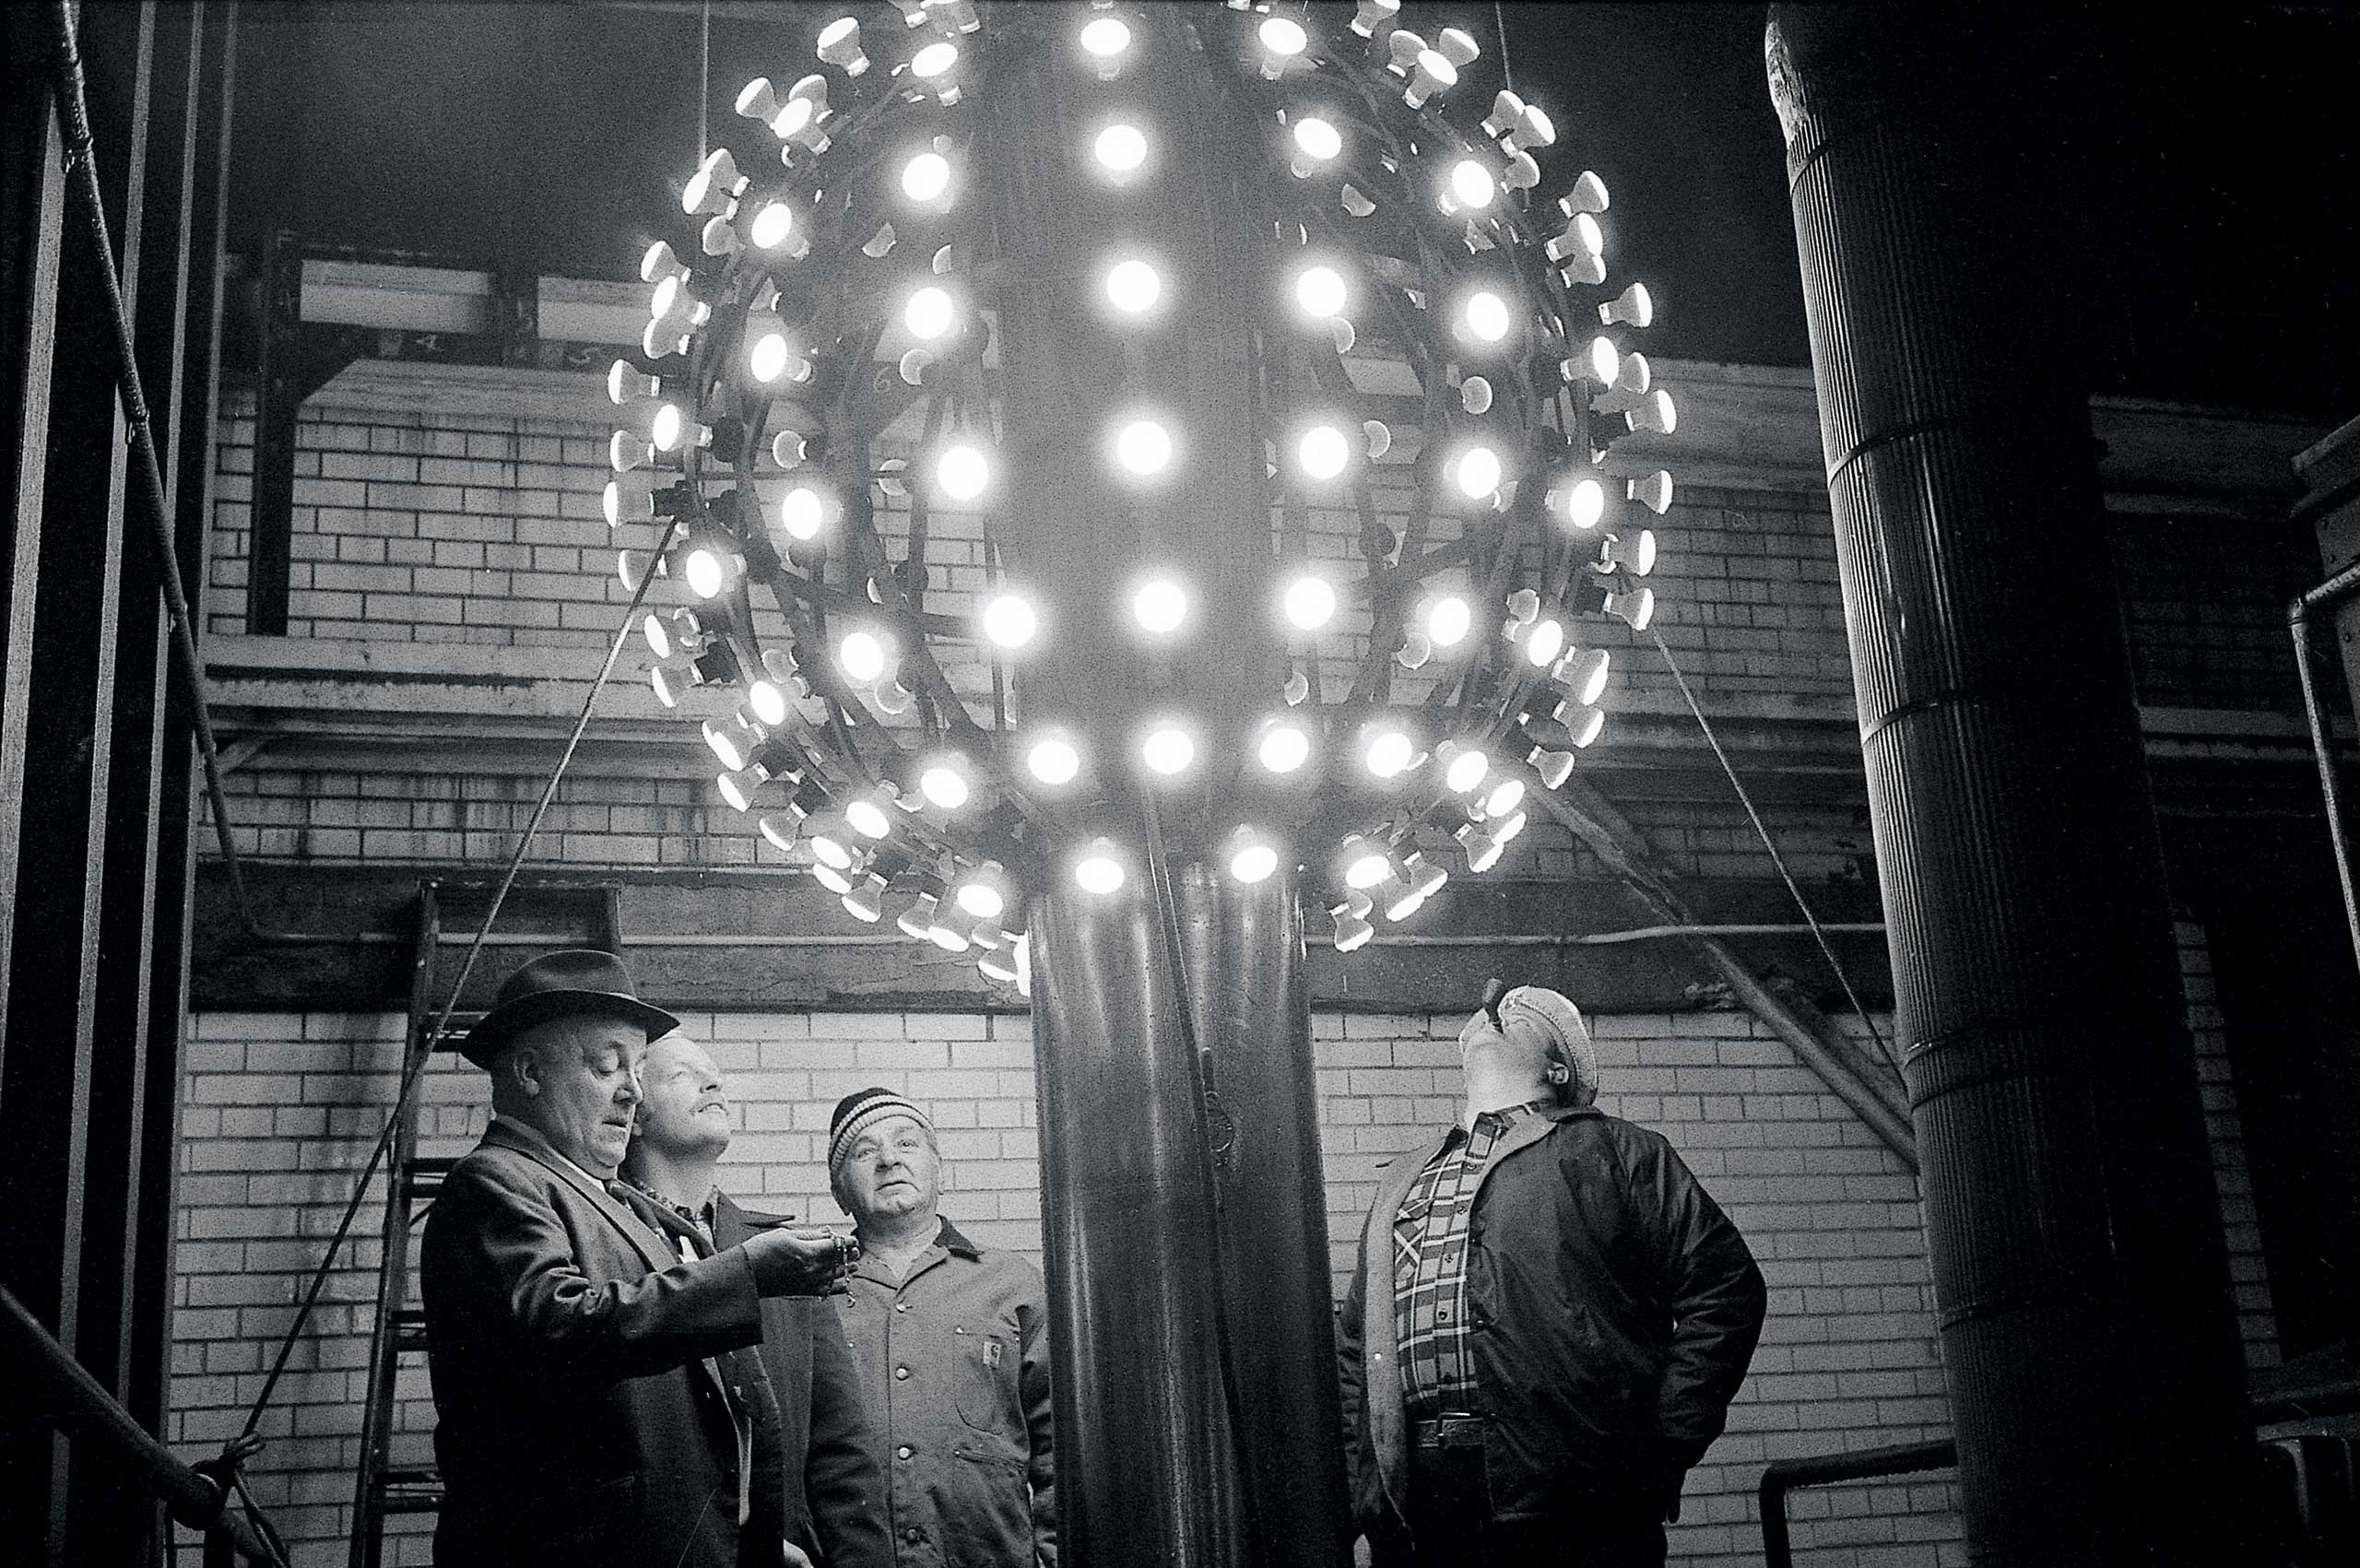 Technicians eye the new improved New Years ball, with halogen lamps for greater visibility, in New York City in 1978.